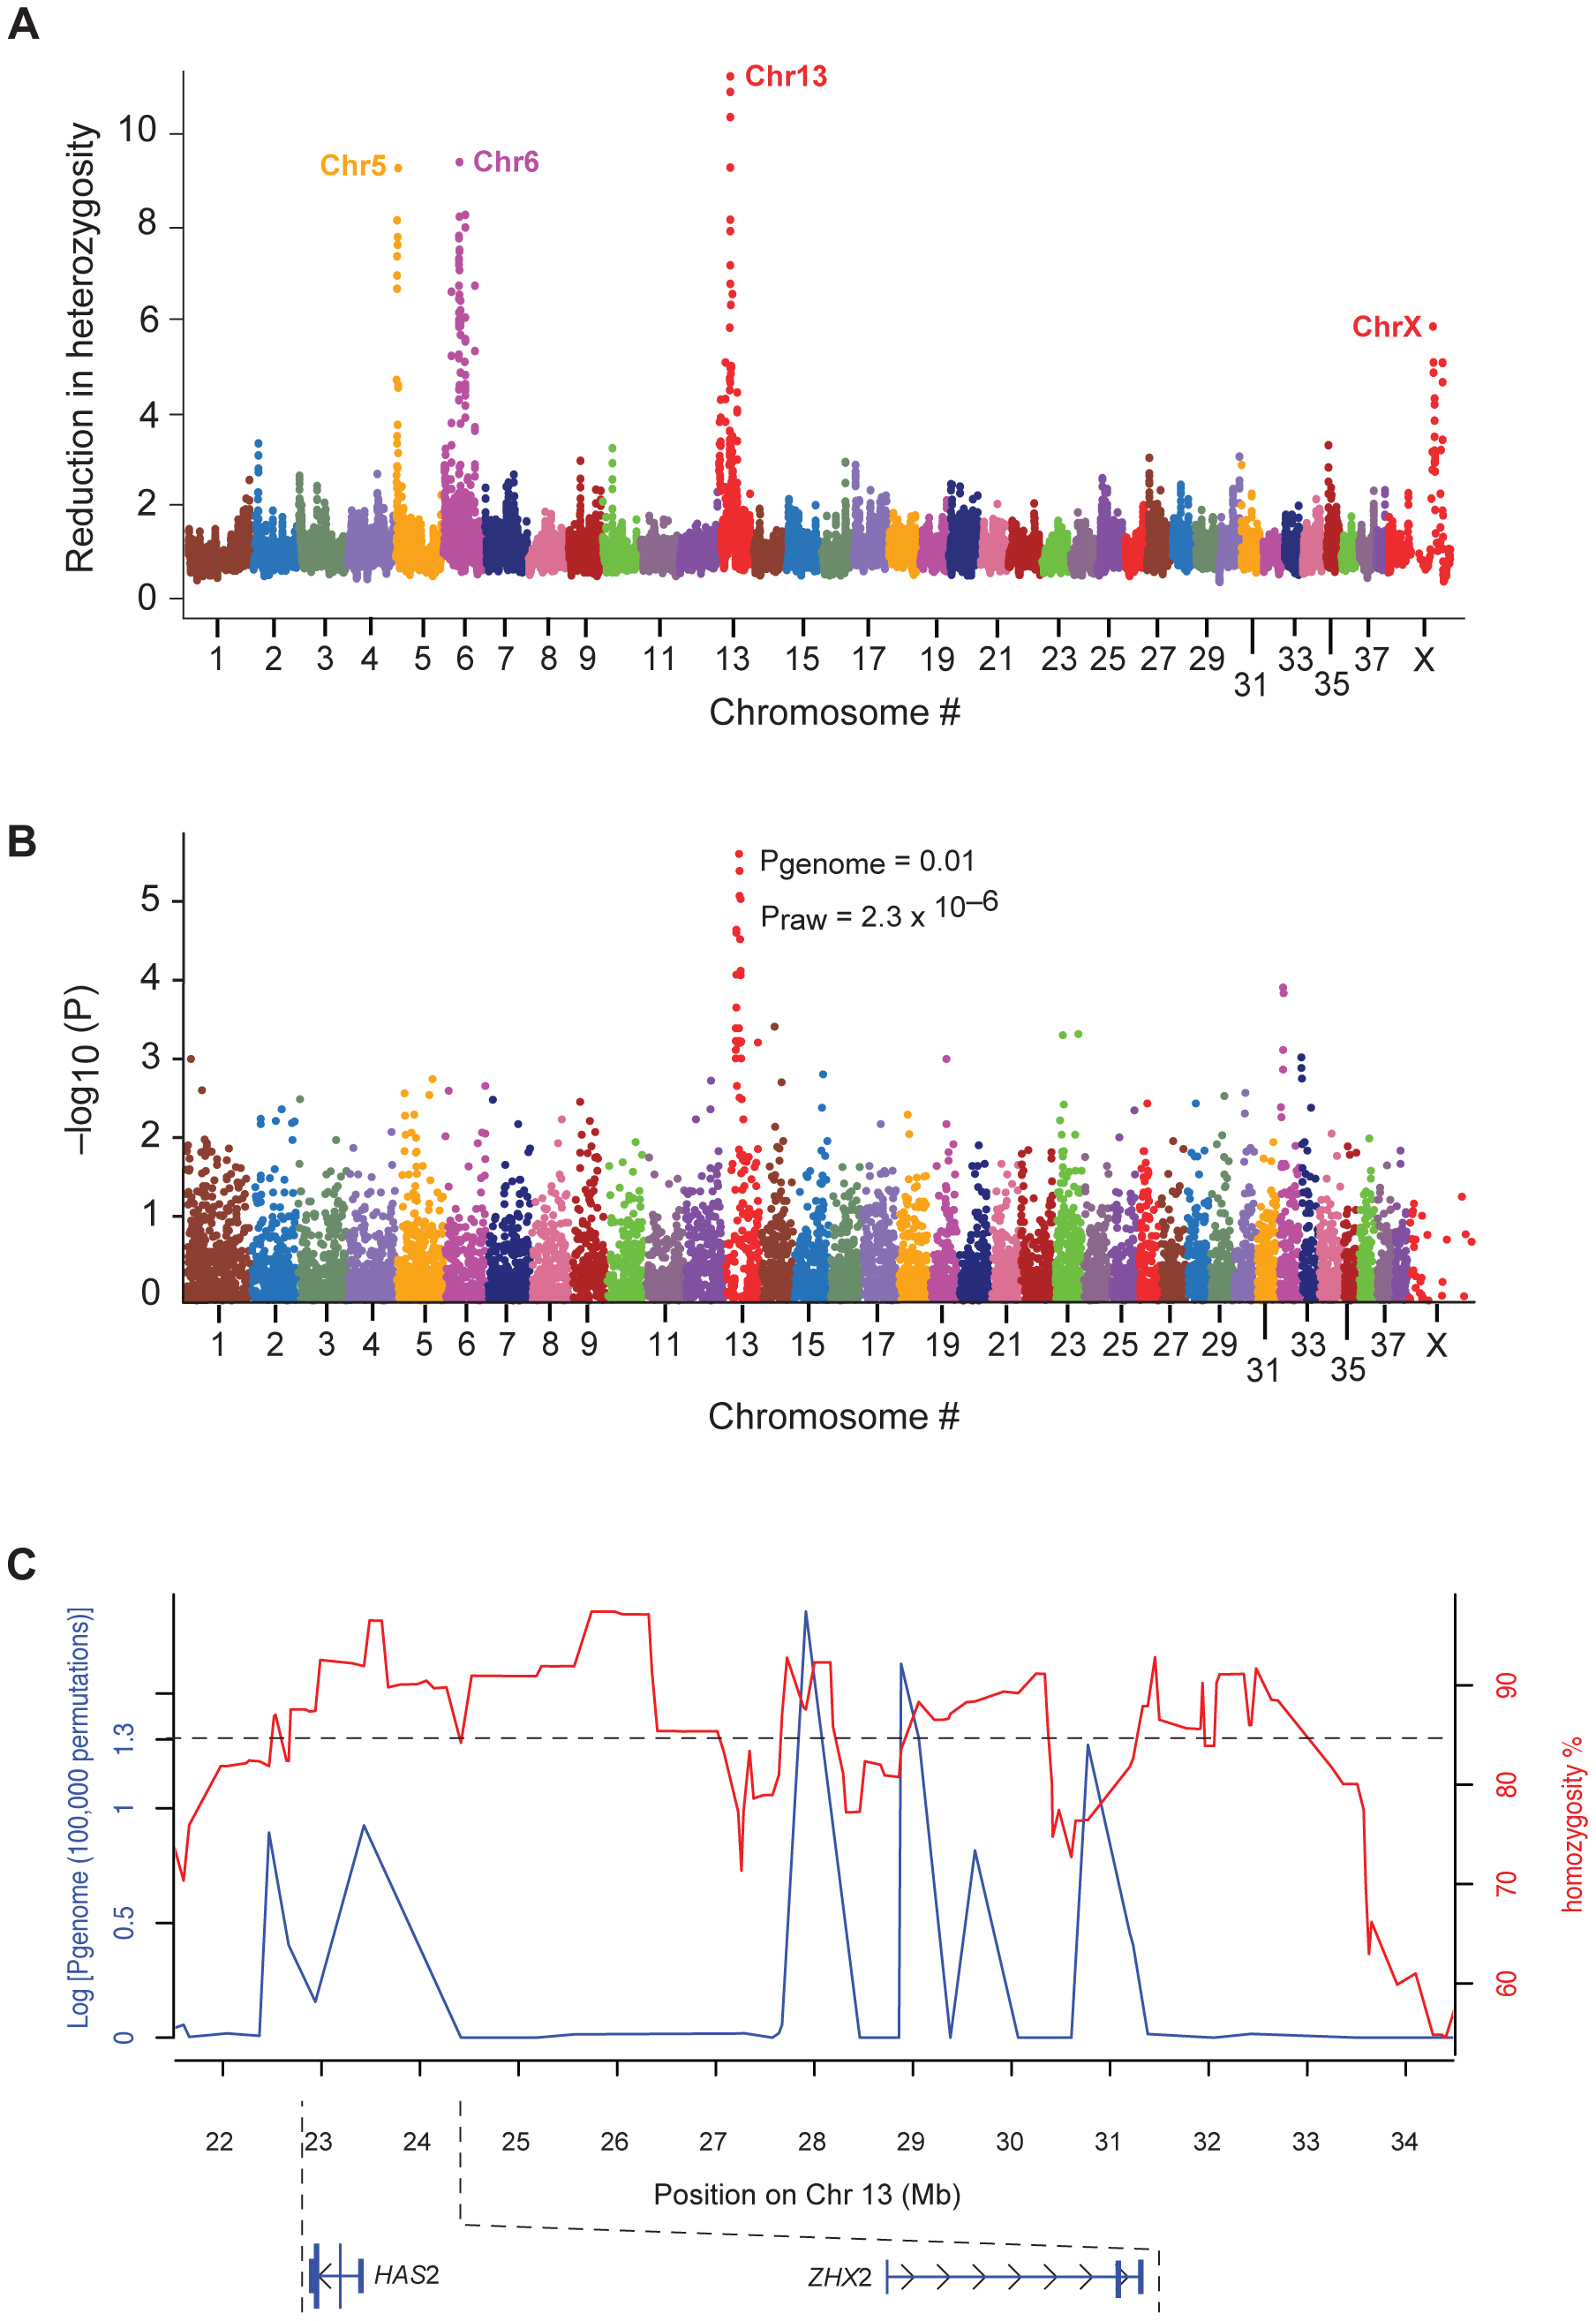 The association with Shar-Pei Fever susceptibility and the strongest selective sweep signal co-localize on chromosome 13.